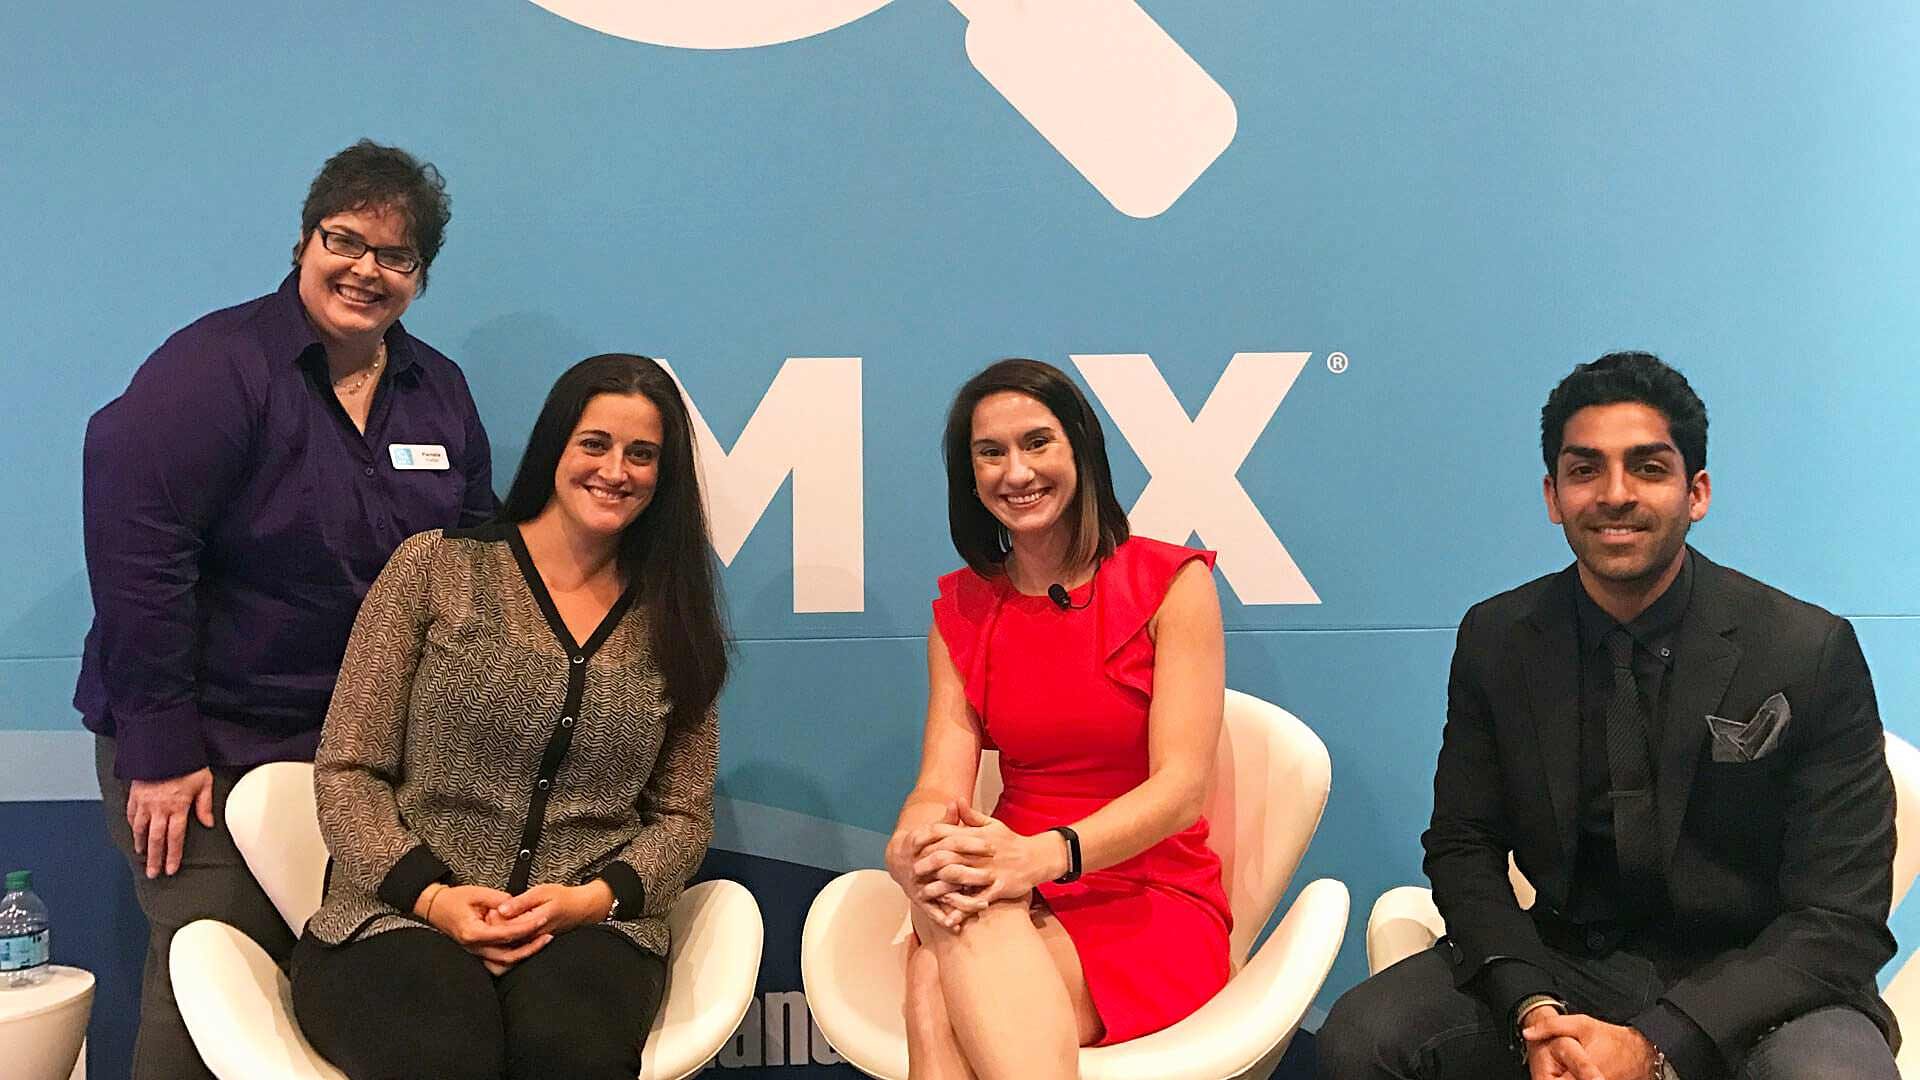 From left to right: Pamela Parker, Executive Features Editor, Marketing Land & Search Engine Land; Tara Siegel, Senior Director of Social at Pepperjam; Maggie Malek, the head of social at the MMI Agency; and Sahil Jain, CEO of AdStage.